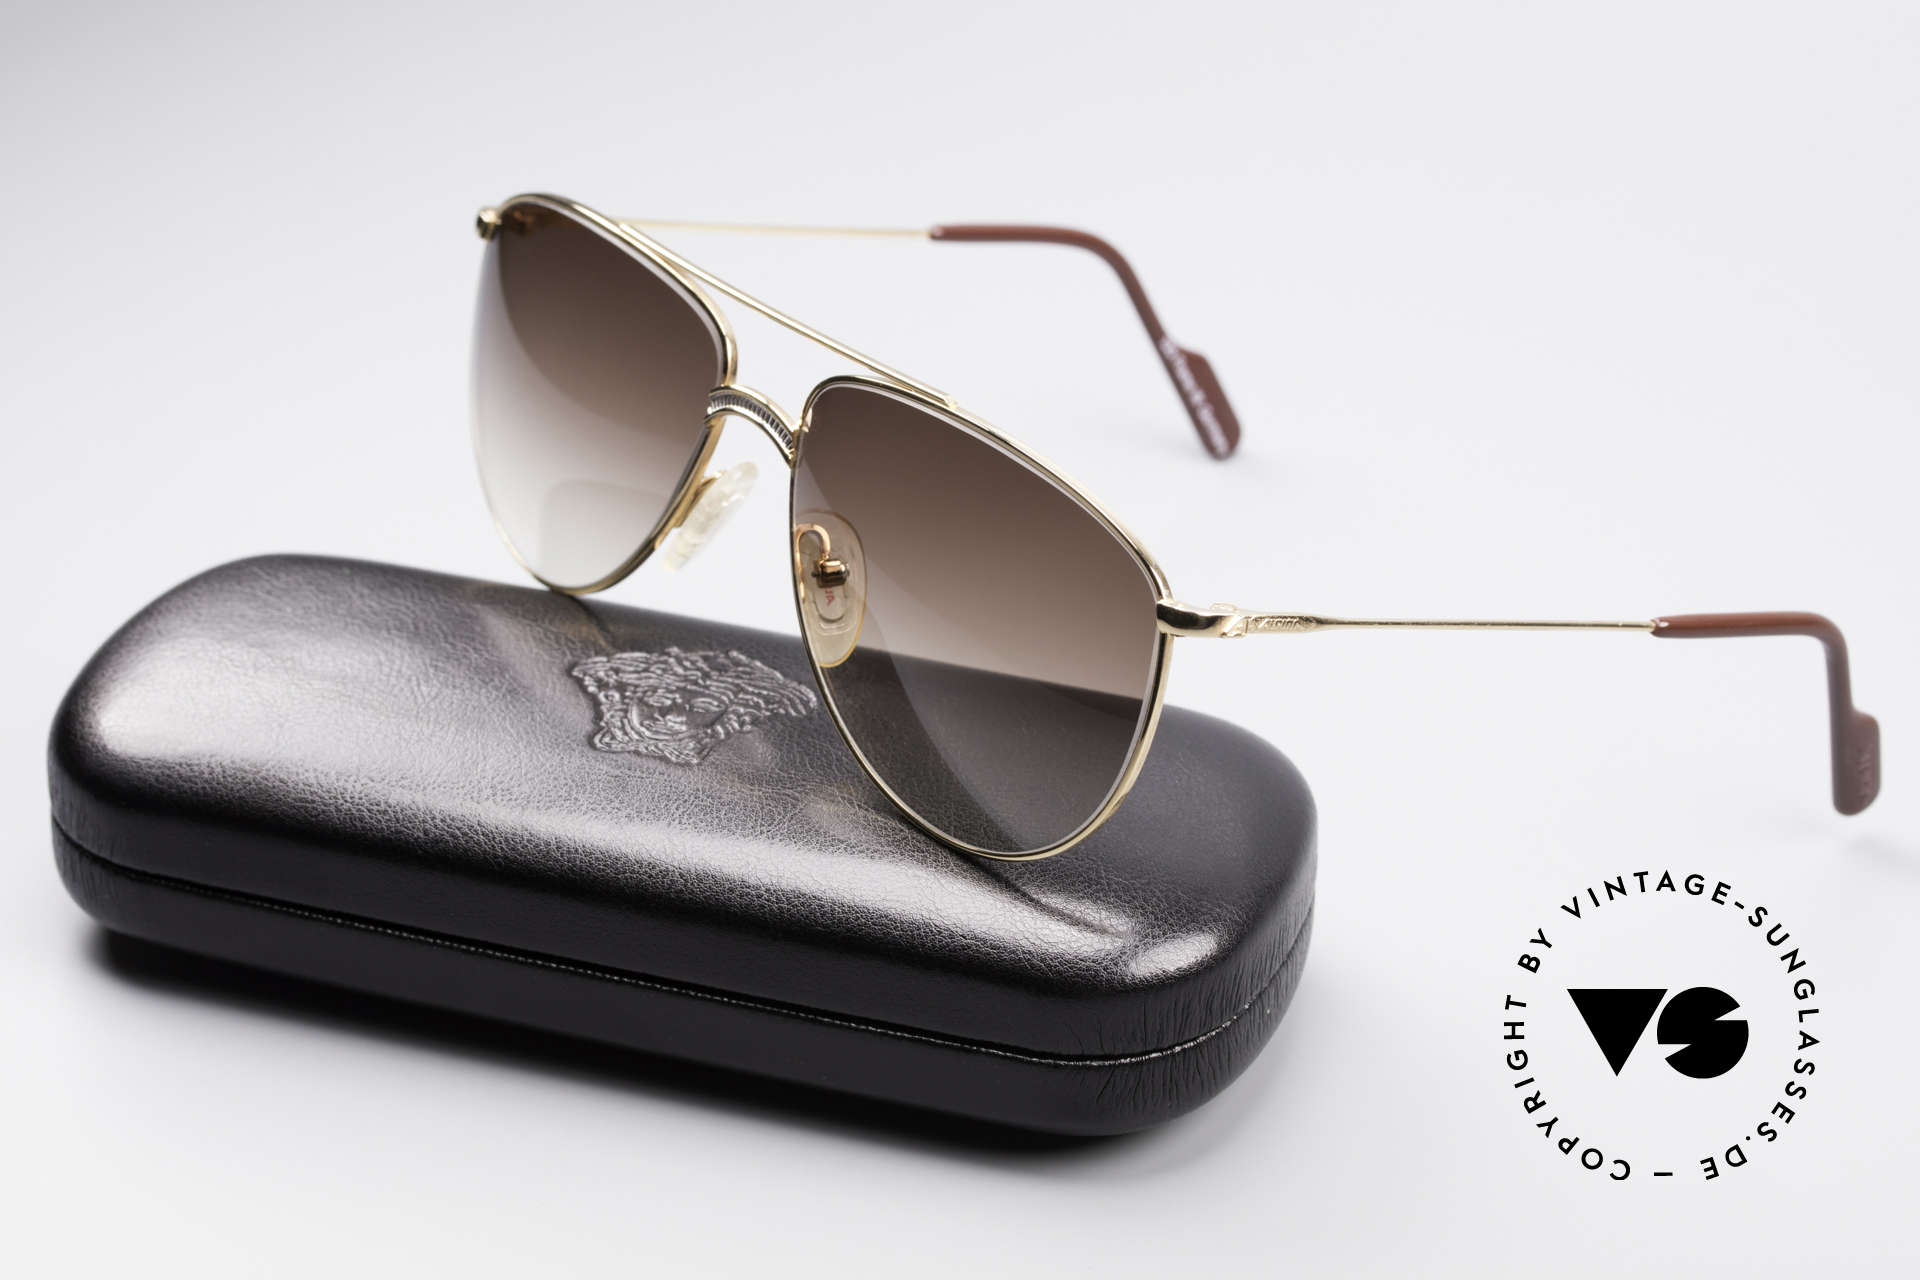 Alpina FM81 Vintage Classic 80's Shades, the frame is made for lenses of any kind (optical or sun), Made for Men